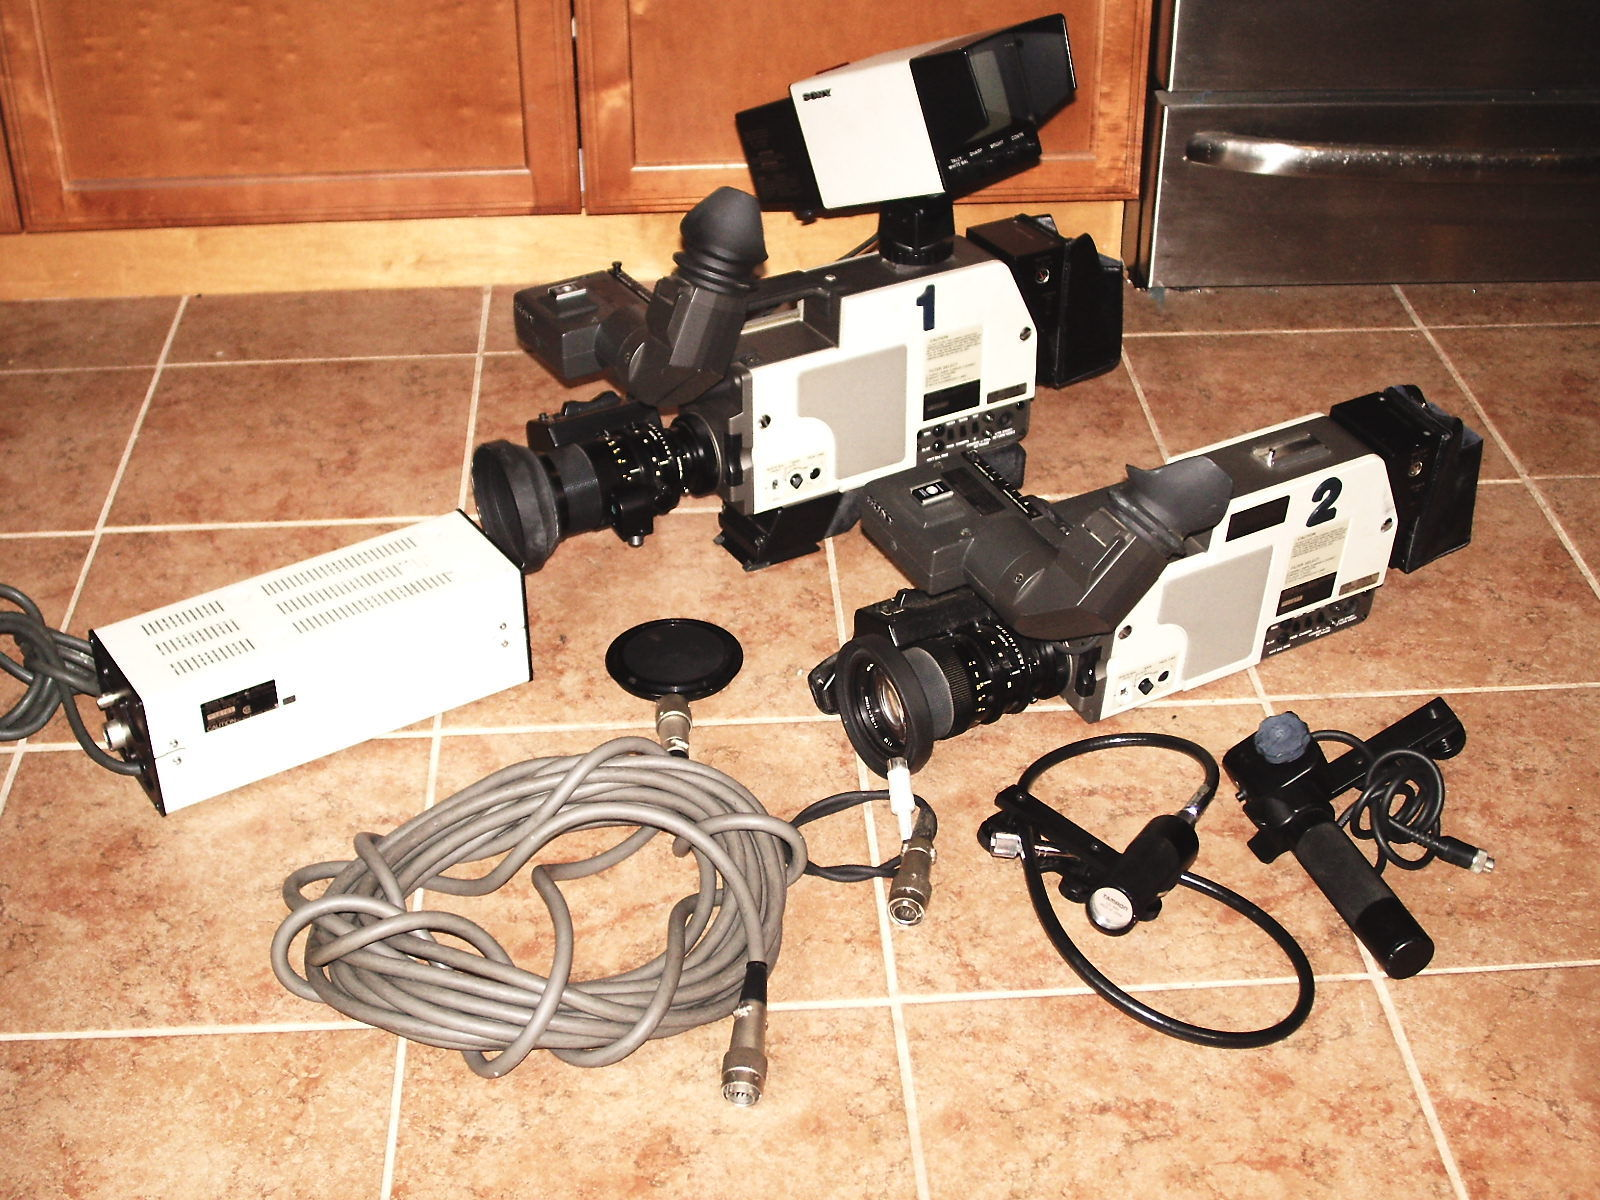 hight resolution of stock shot of two sony dxc 1820 cameras note ac power supply breakout box unit and fat cable that enabled the cameras to be used in a studio setting